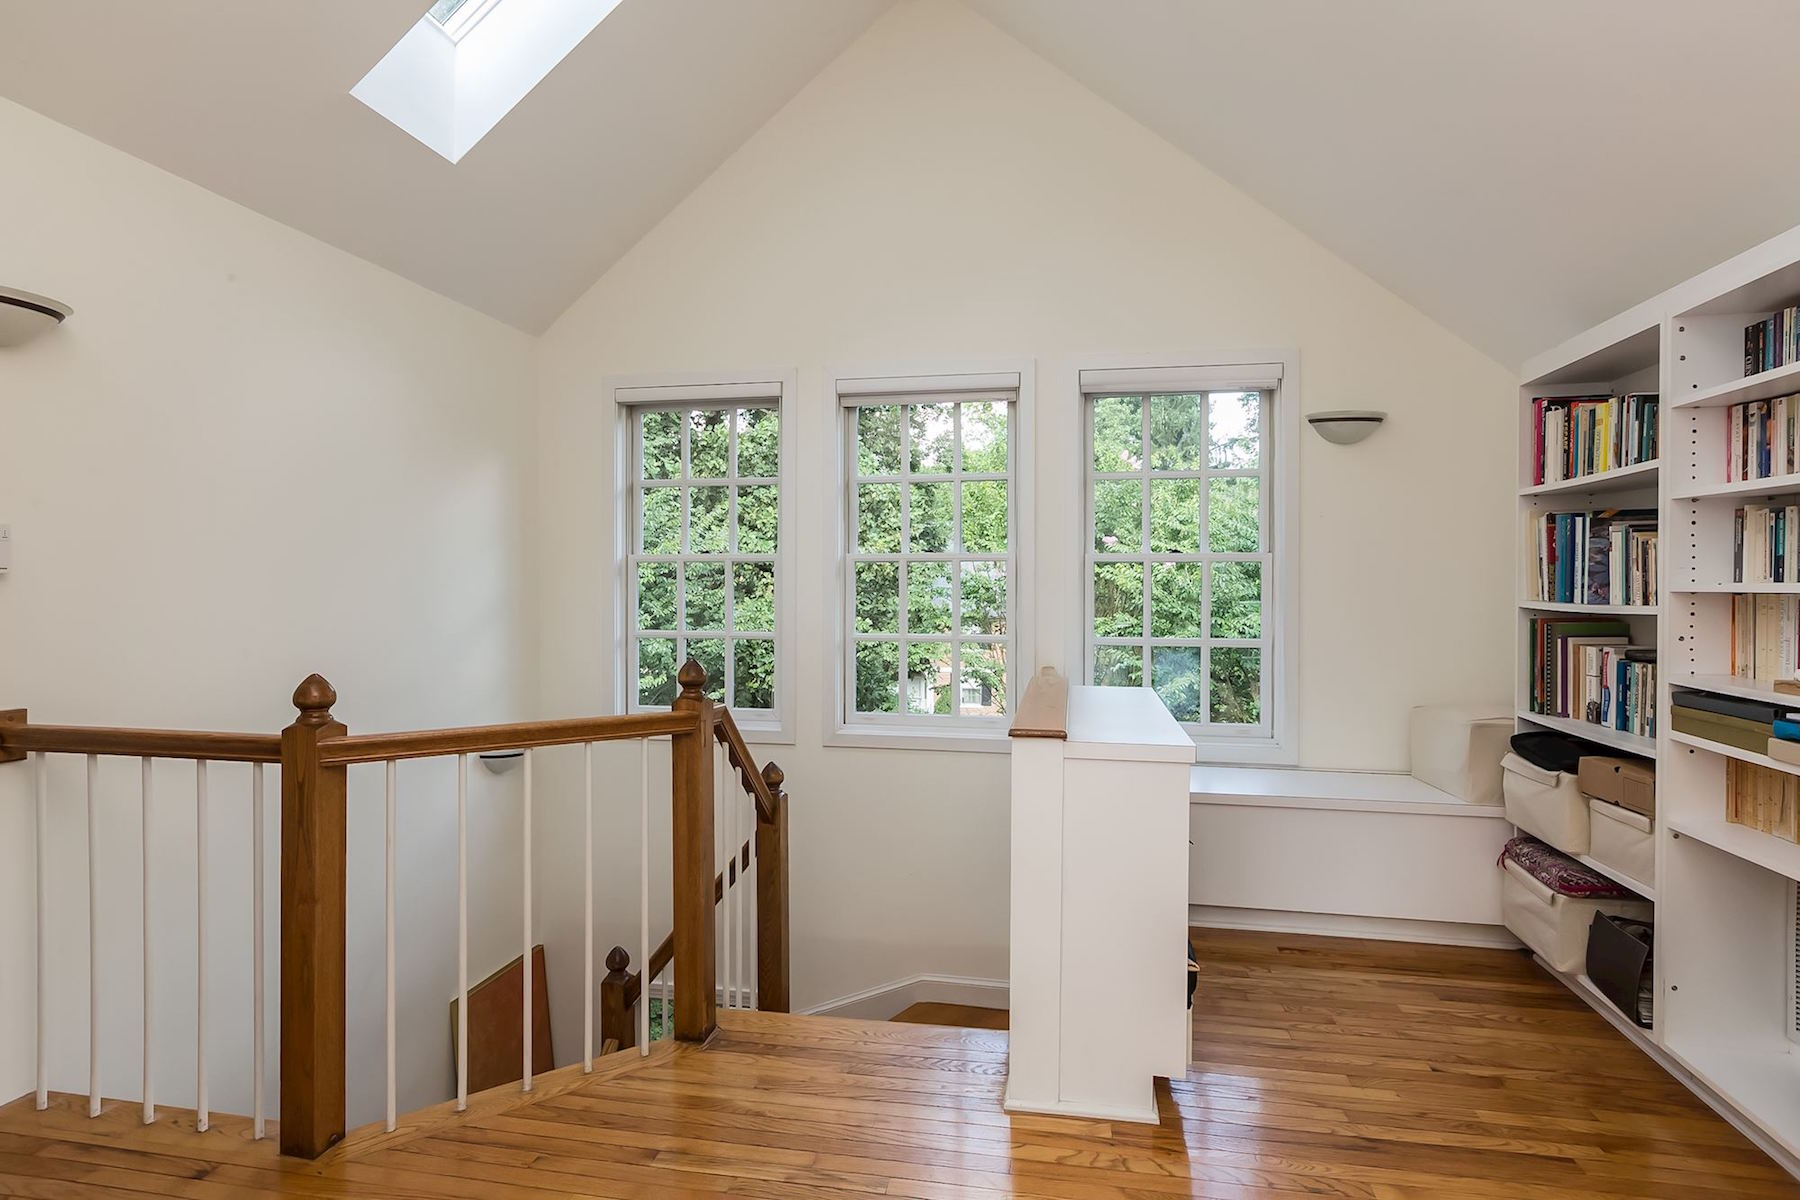 Additional photo for property listing at 5153 Tilden Street 5153 Tilden Street Nw Washington, District Of Columbia 20016 United States